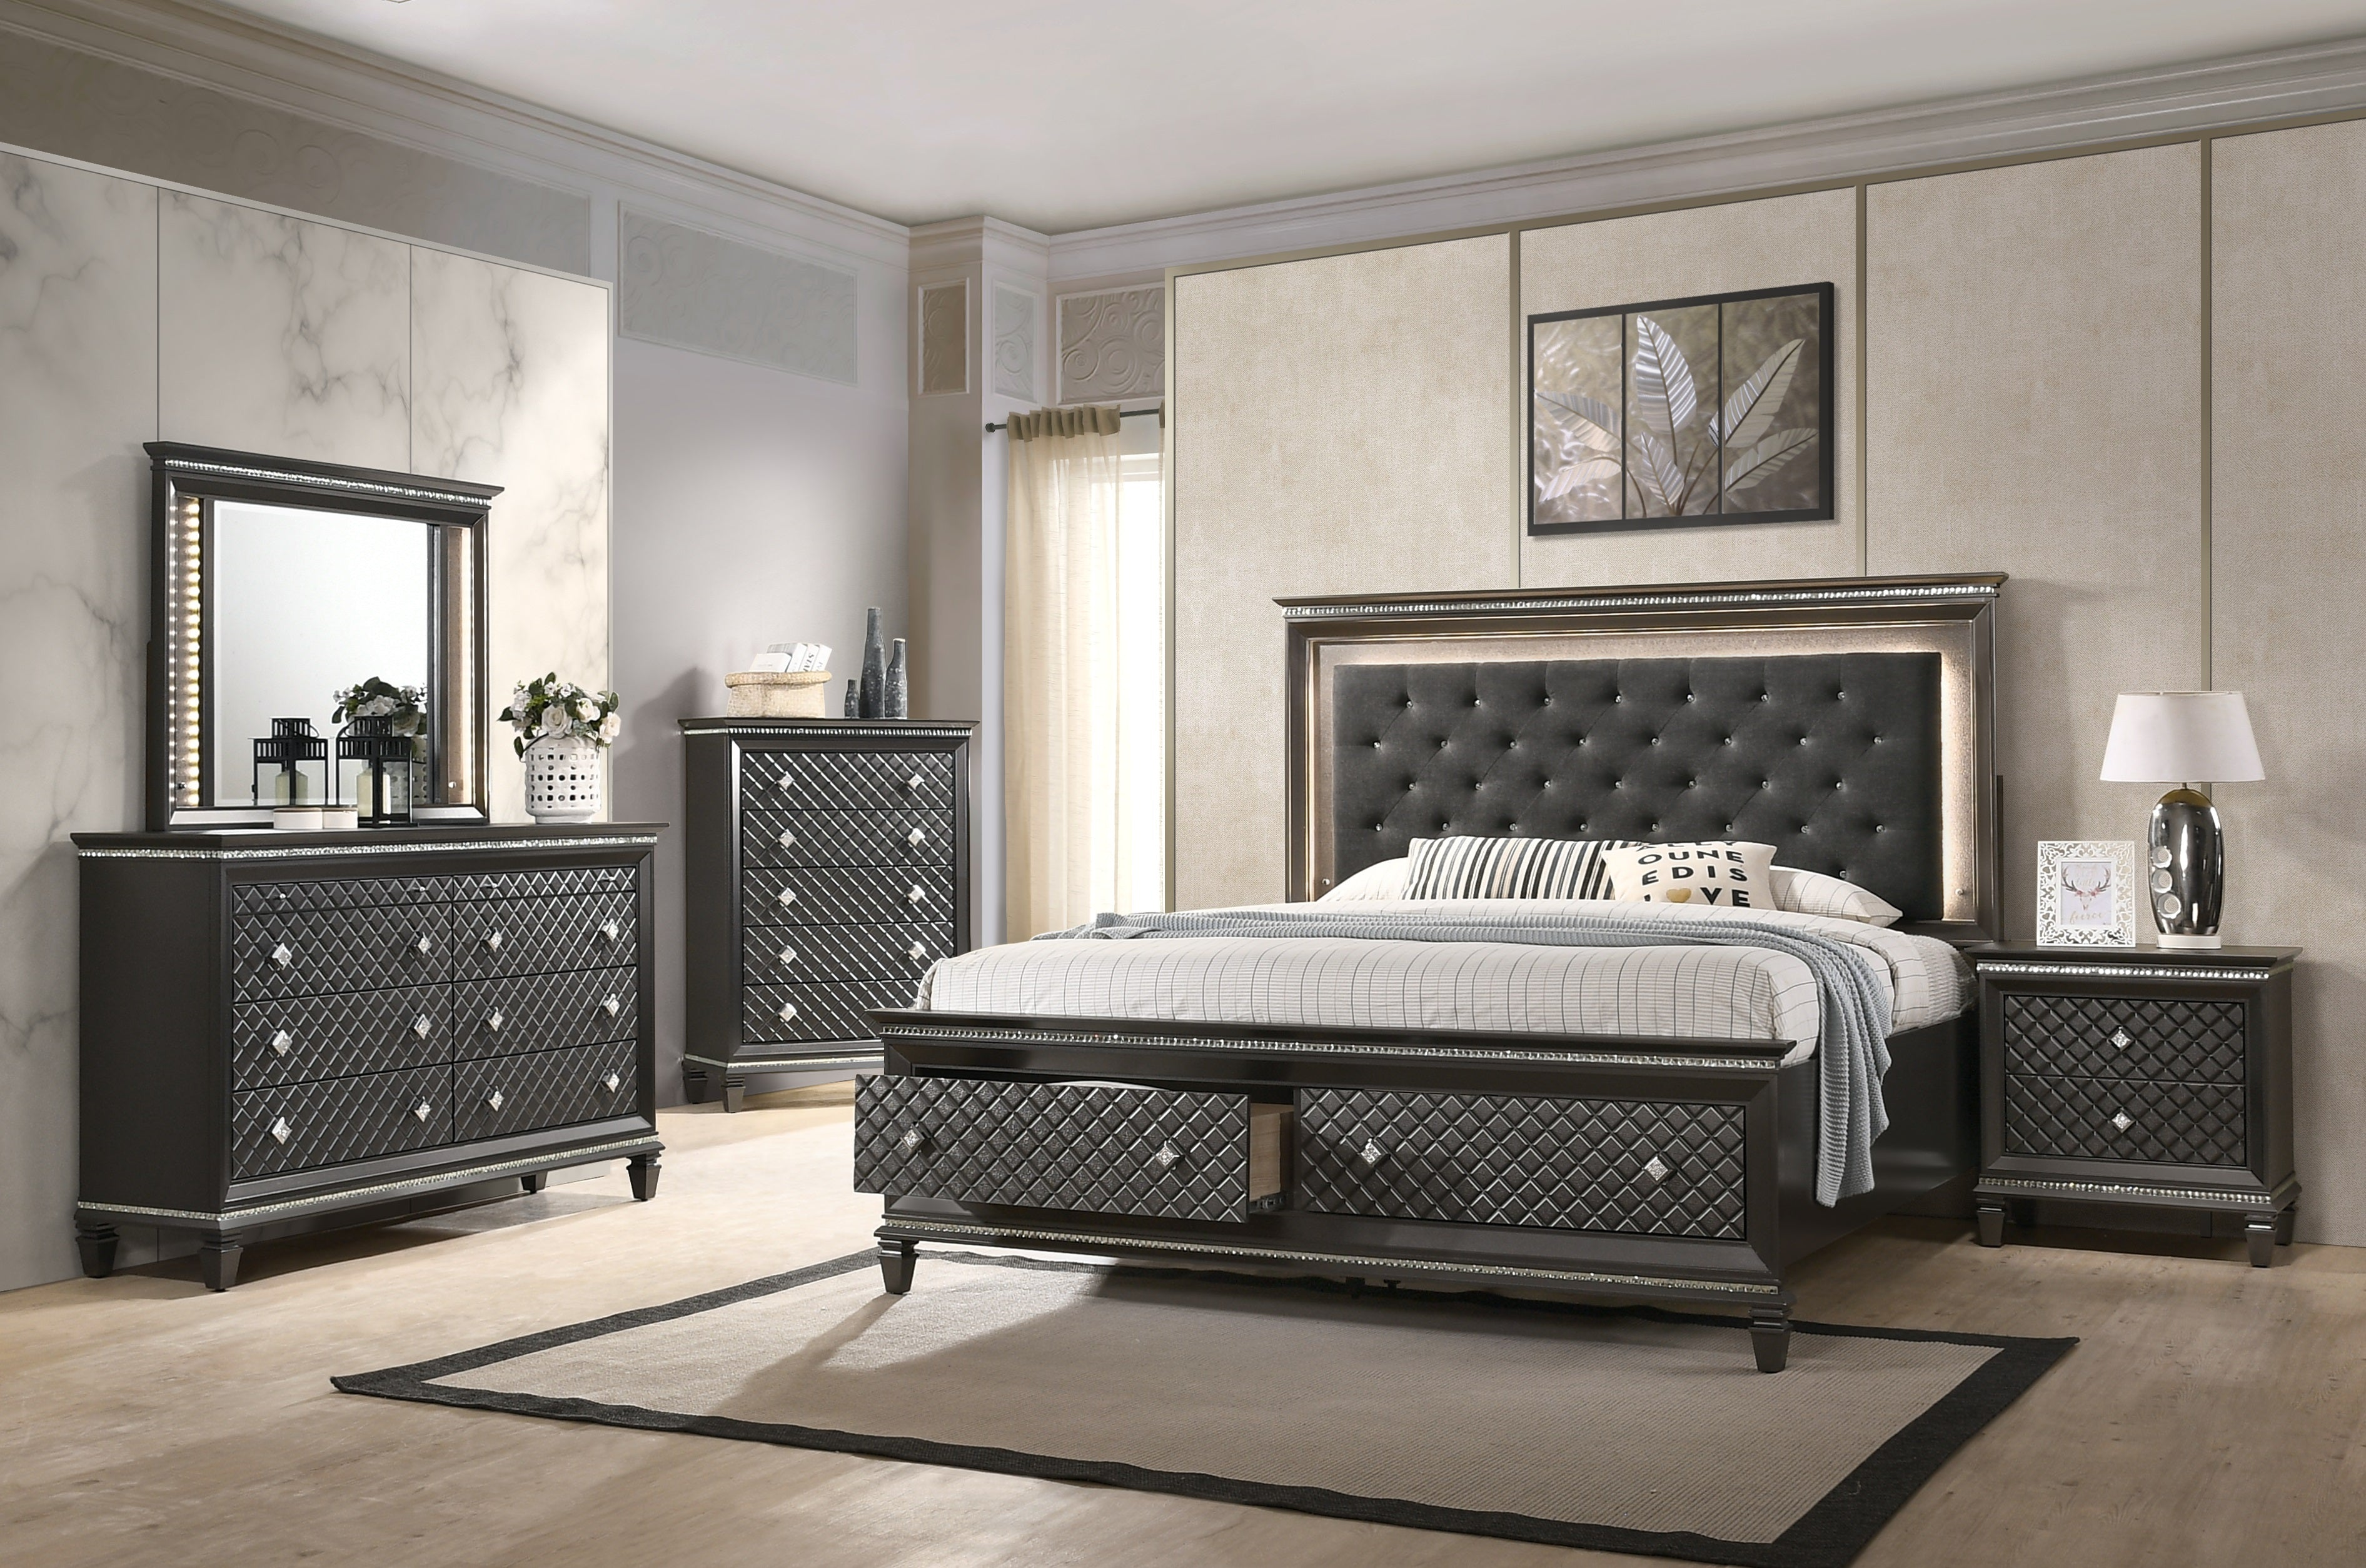 Chloe - 5 Pc Cal King Set - Lifestyle Furniture